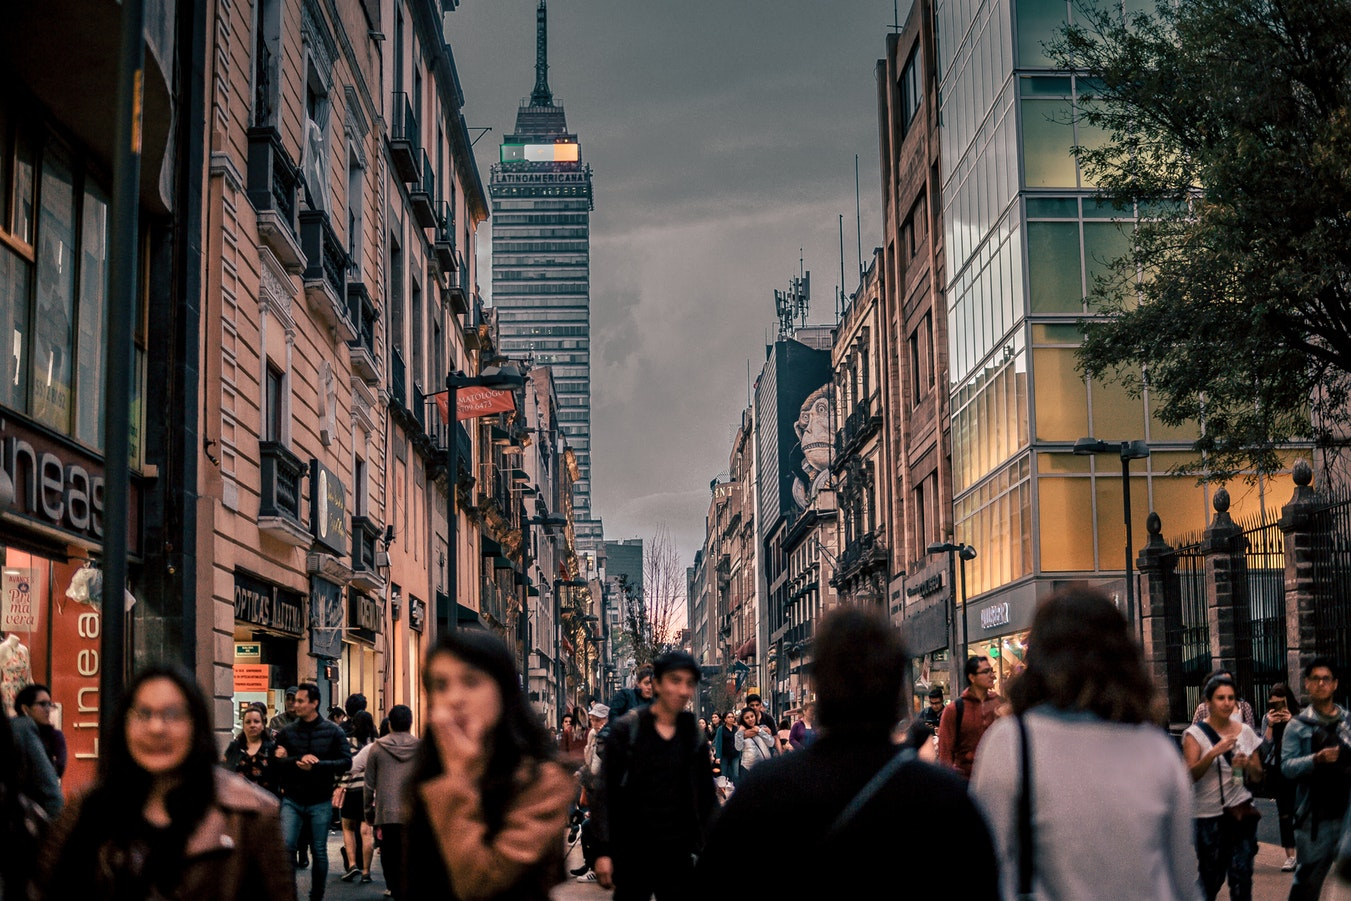 Mexico City, Mexico (Photo by Jezael Melgoza @jezael)